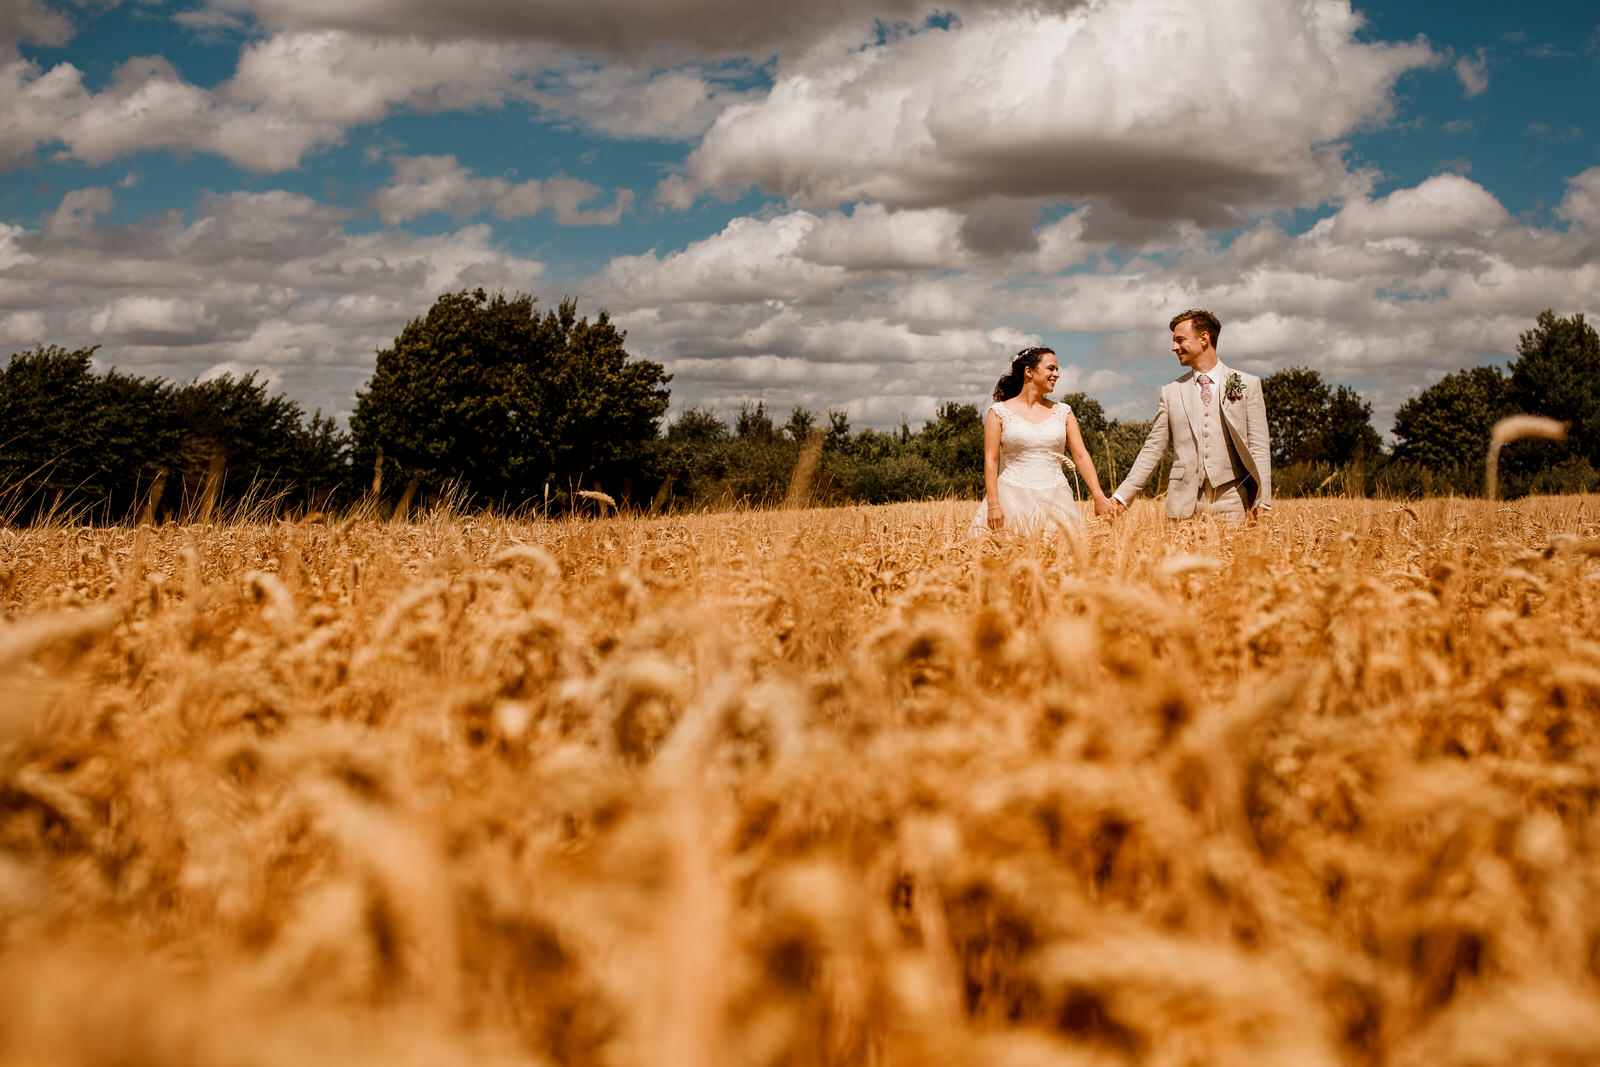 corn field with wedding couple